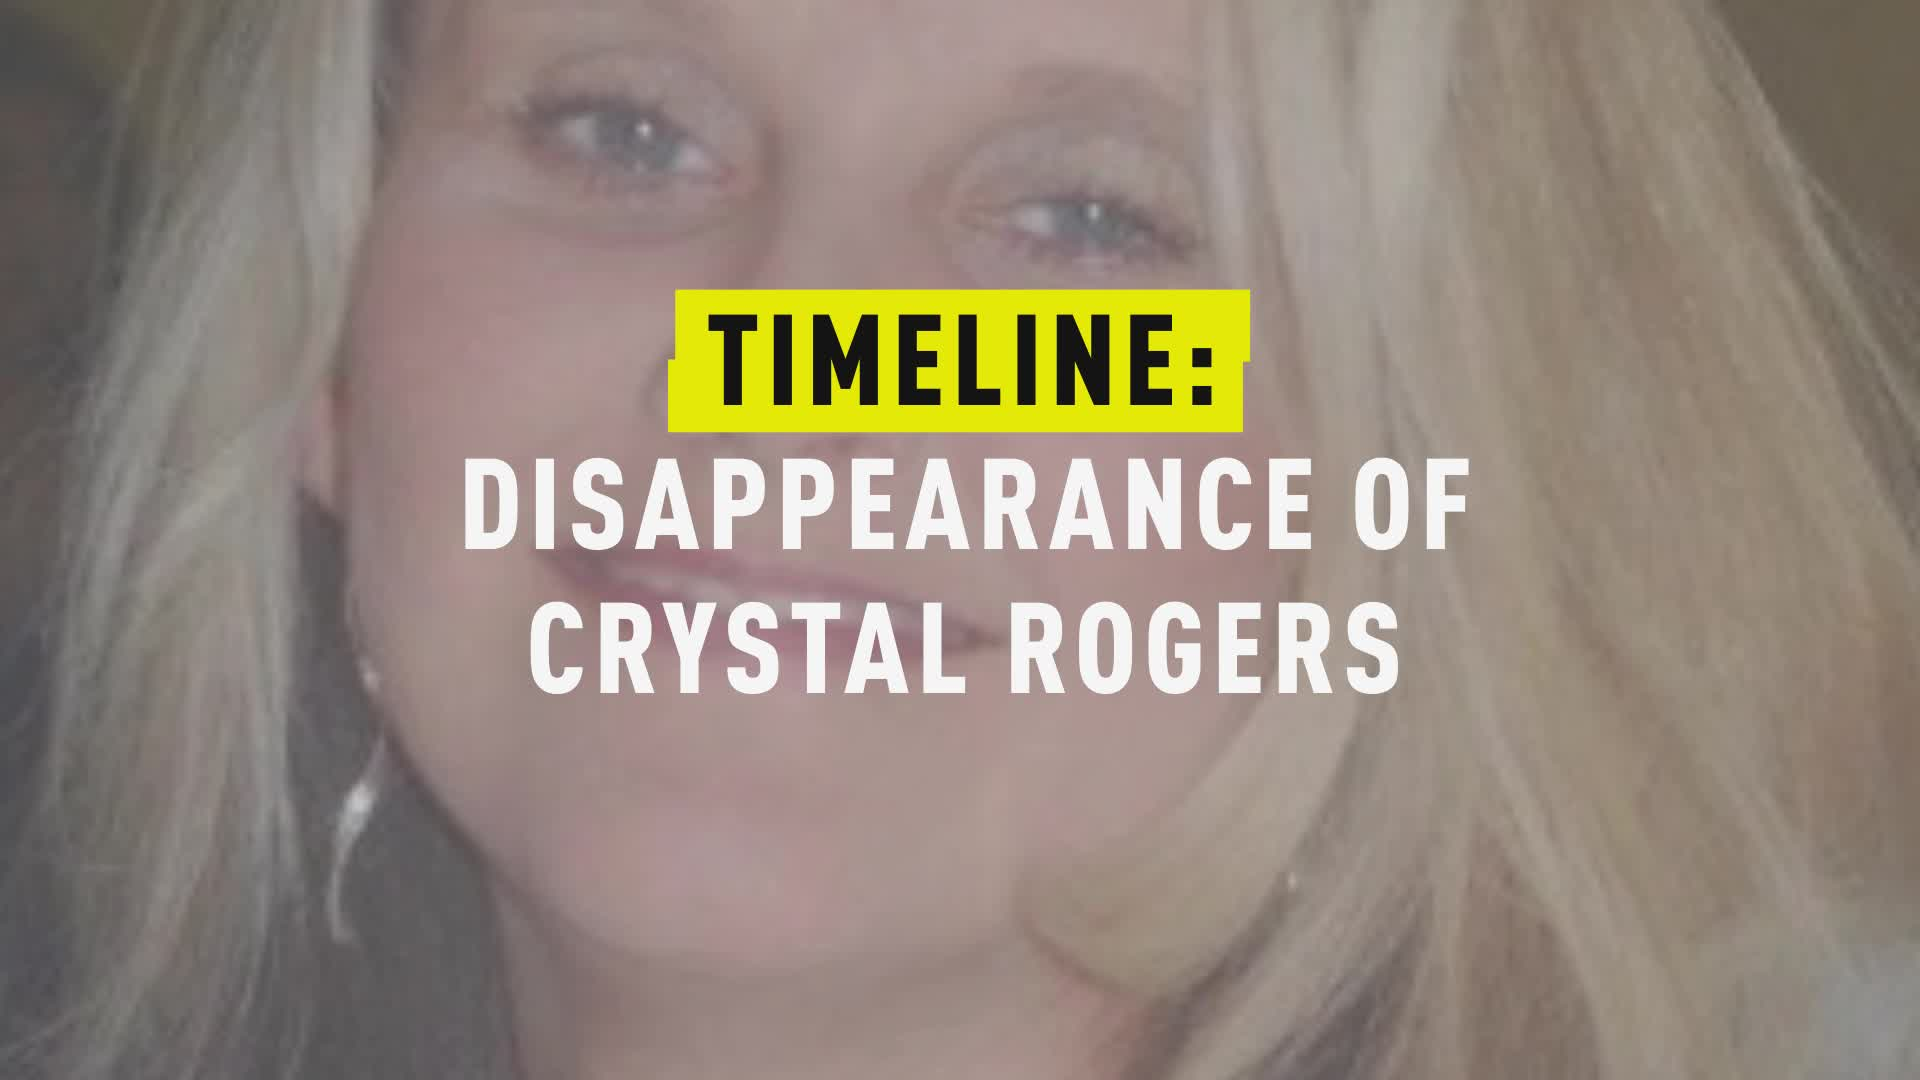 Timeline: The Disappearance of Crystal Rogers